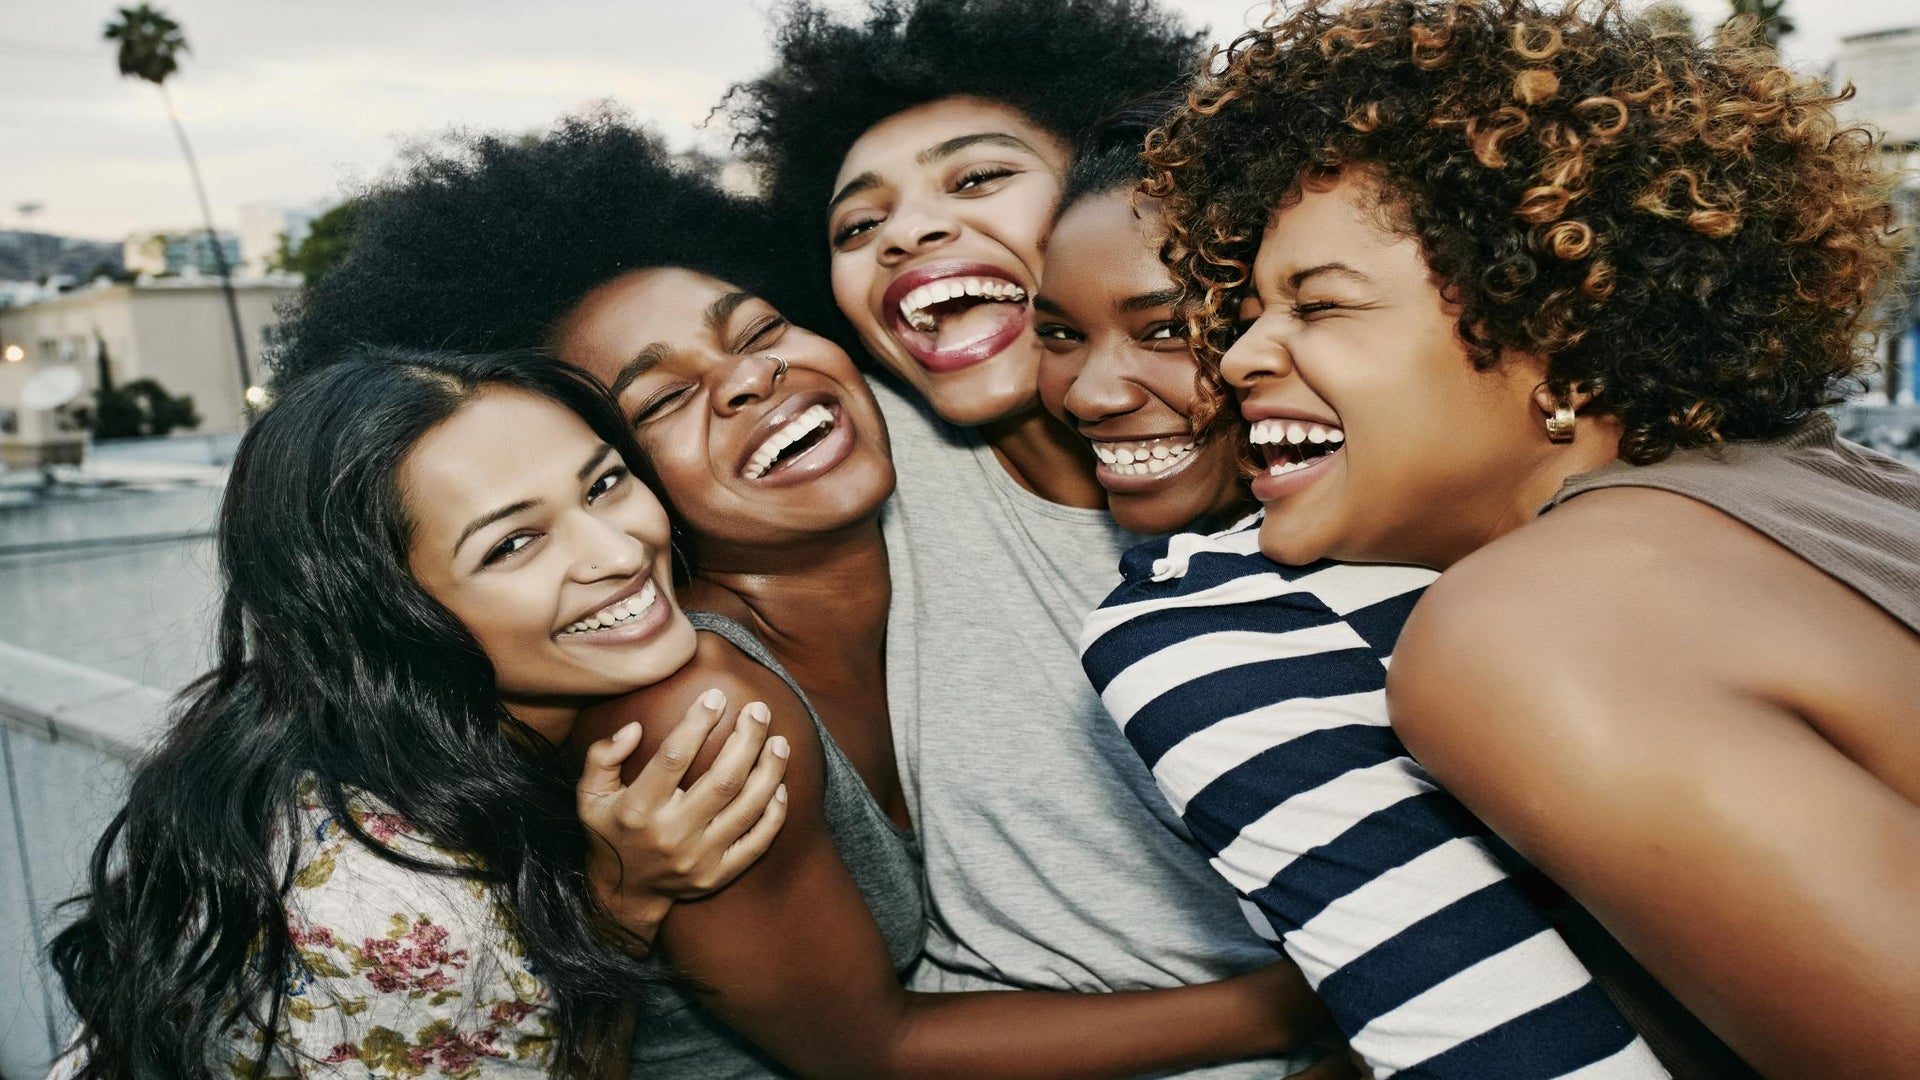 Looking to Have a Bachelorette Party? The ESSENCE Festival Is Your Ideal Destination